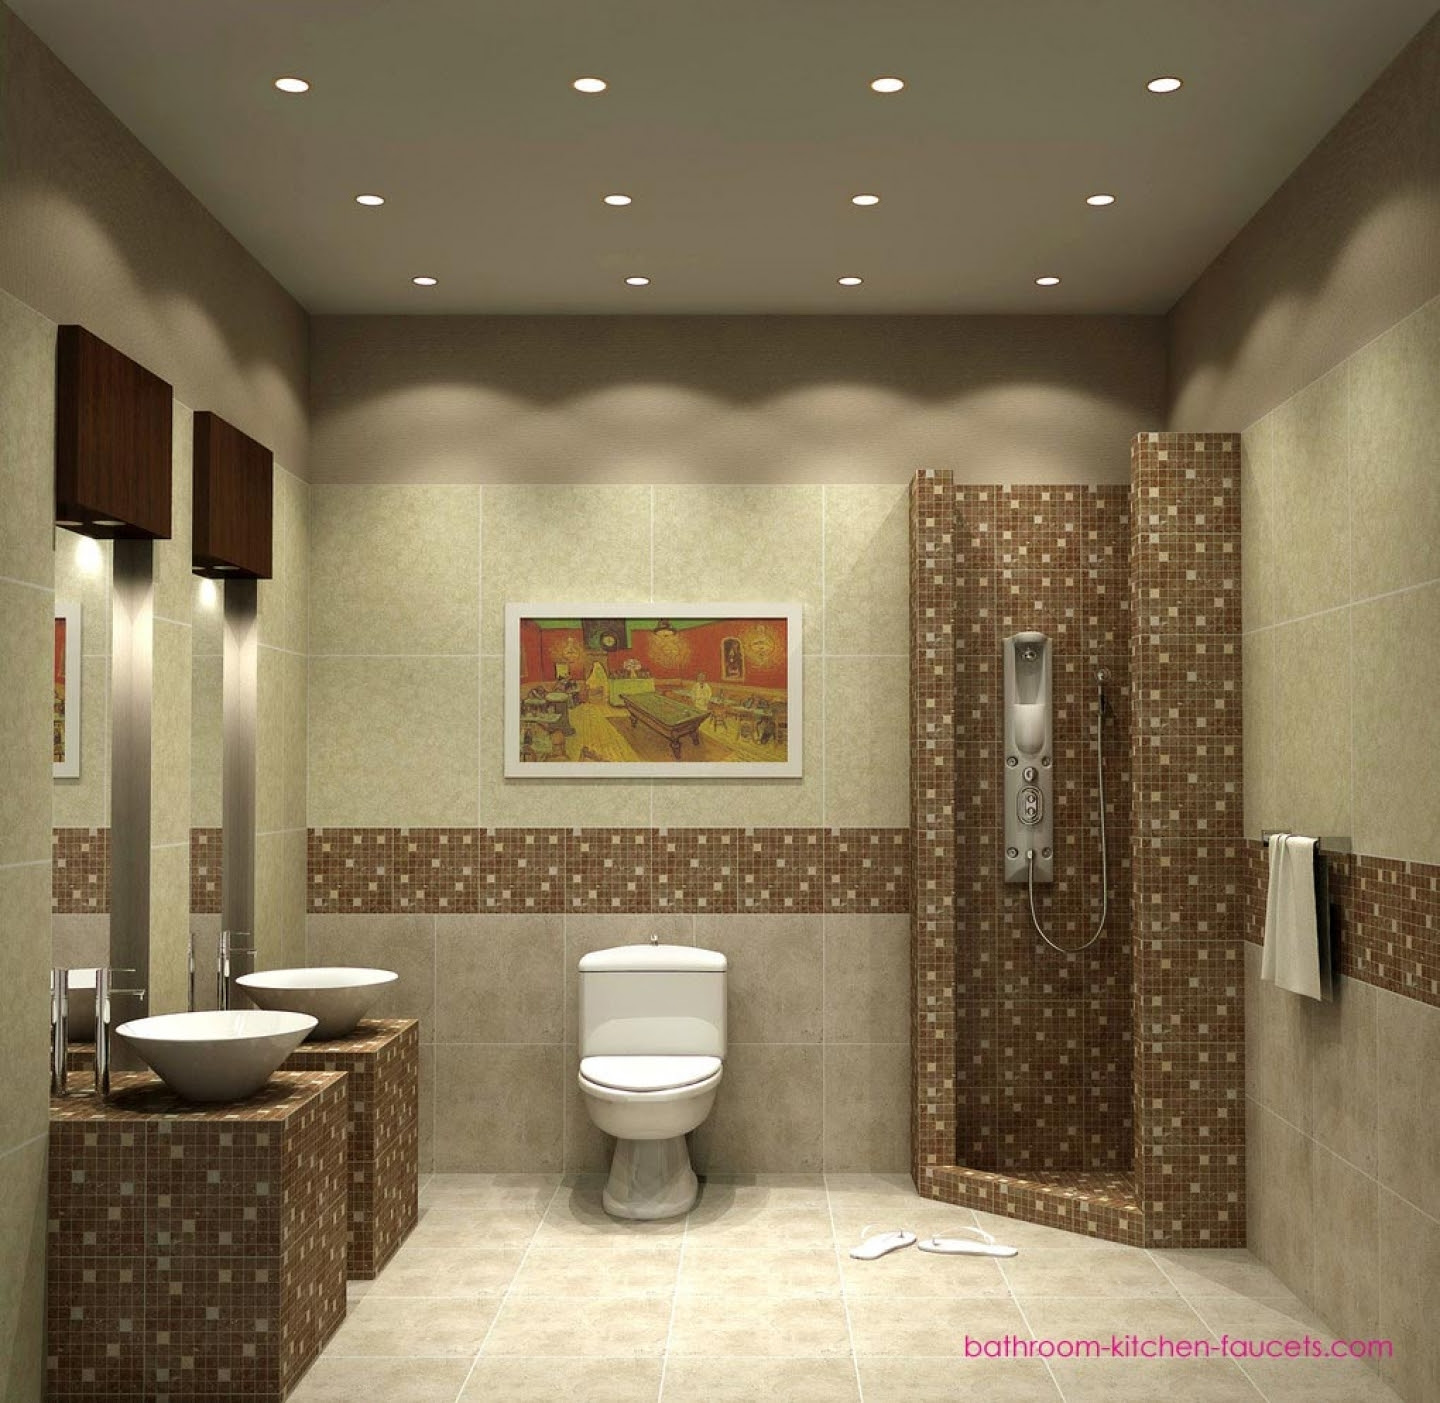 http://www.almrsal.com/wp-content/uploads/2013/07/48490-decorating-ideas-and-design-pictures-small-bathroom-decorating-2012_1440x900-2.jpg